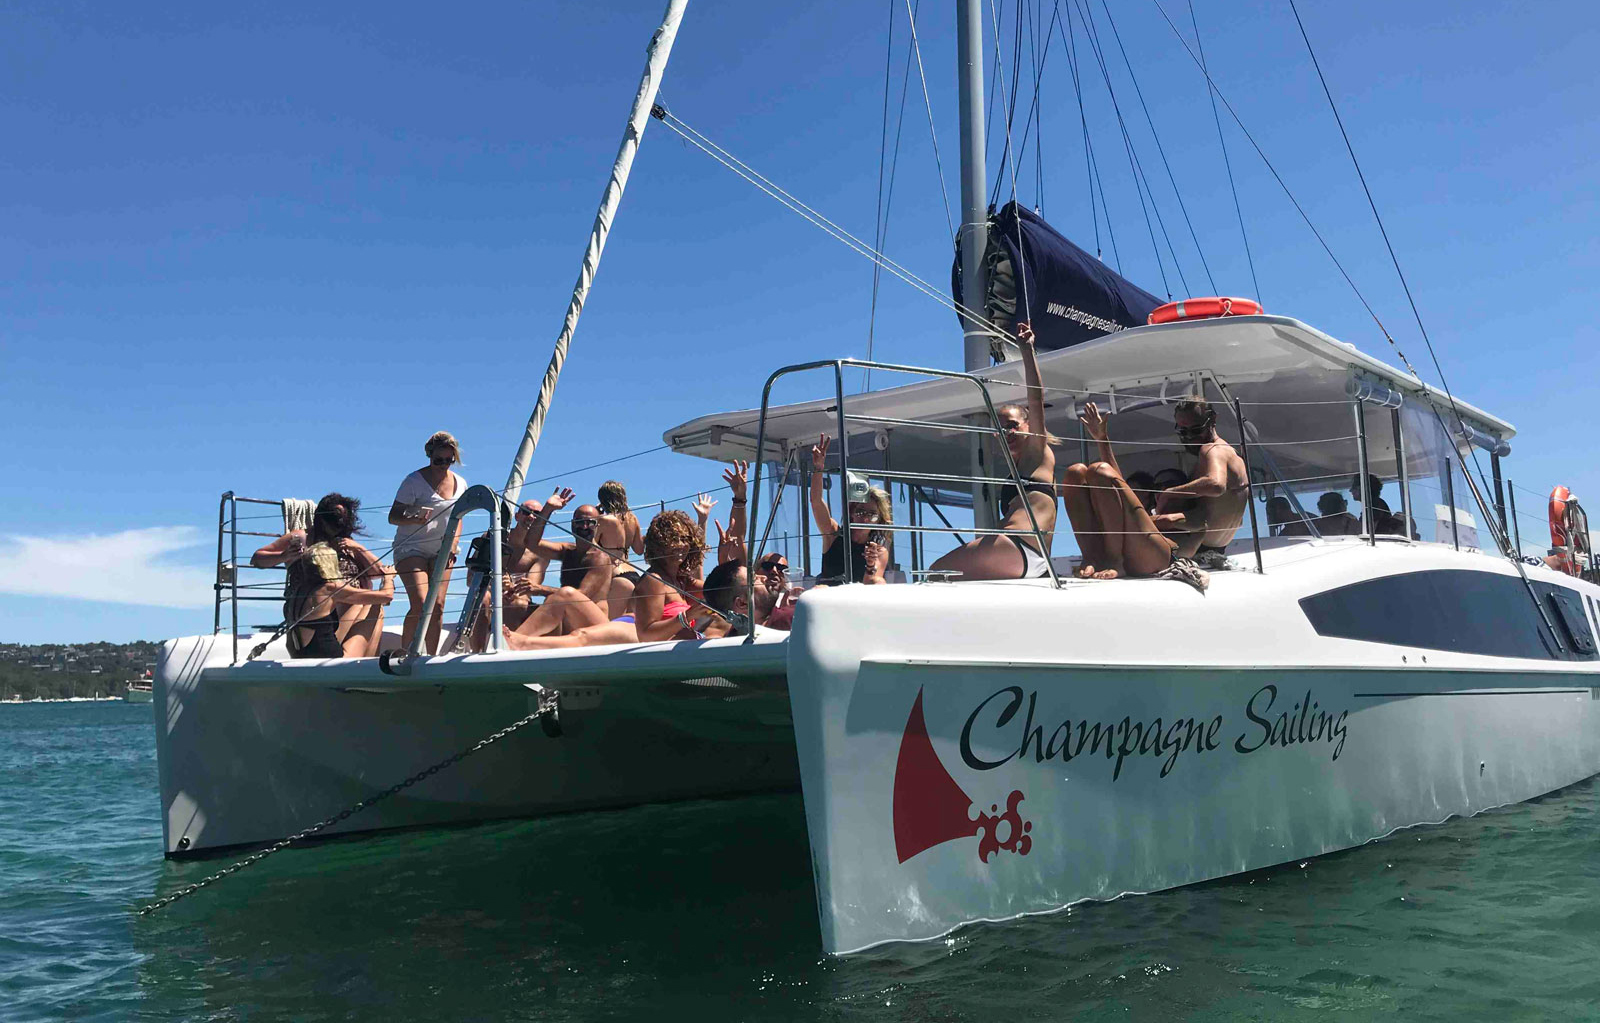 Champagne Sailing - Designed for entertaining, this catamaran provides an experience not to be missed.